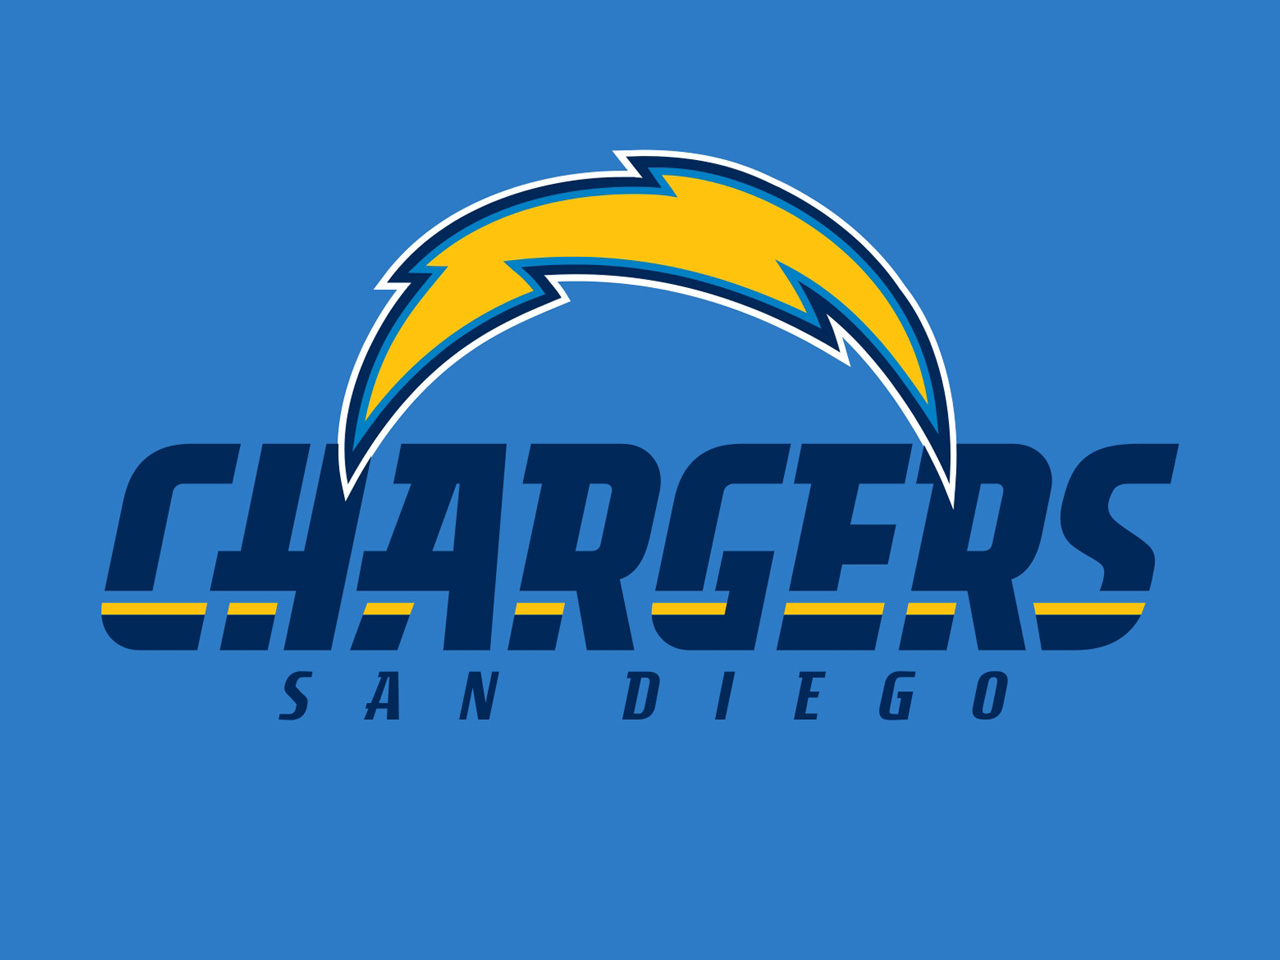 Chargers Wallpaper 1280x960 69206